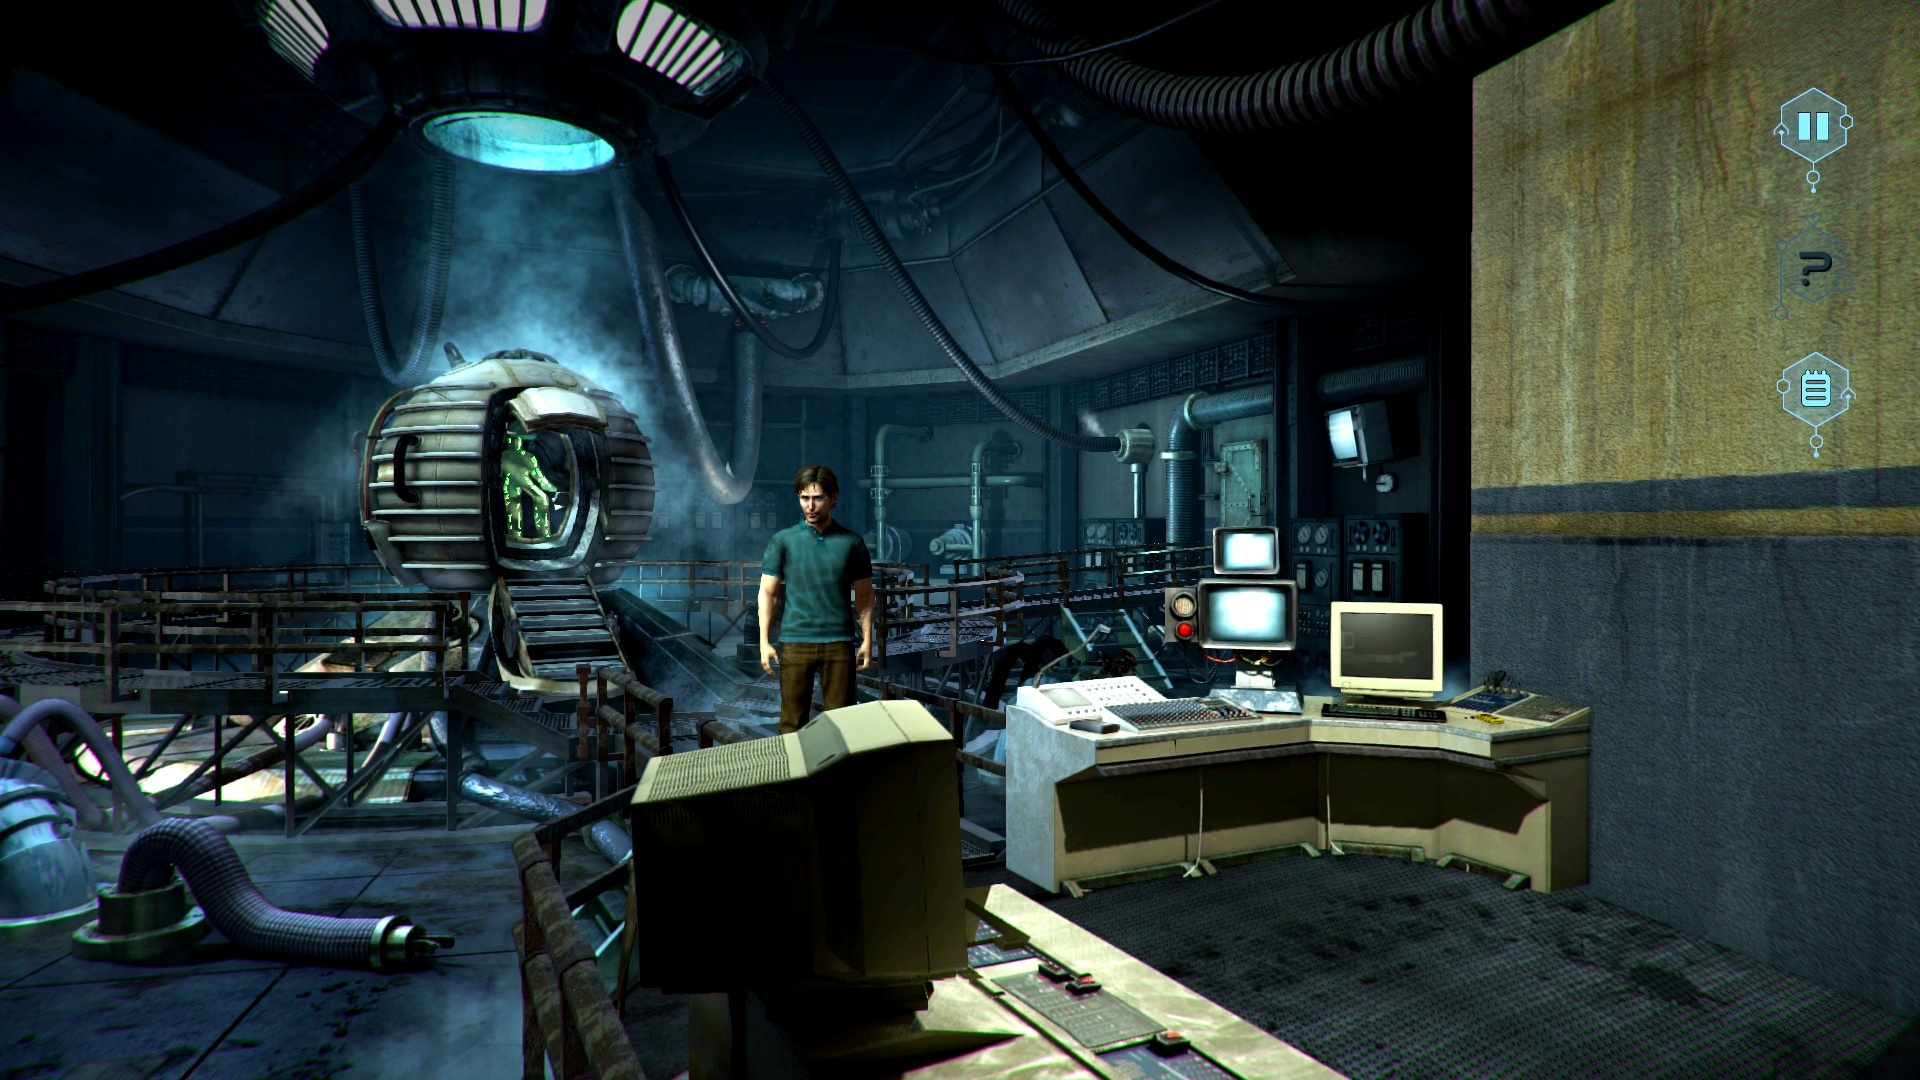 Free online Point And Click games - Room Escape Games